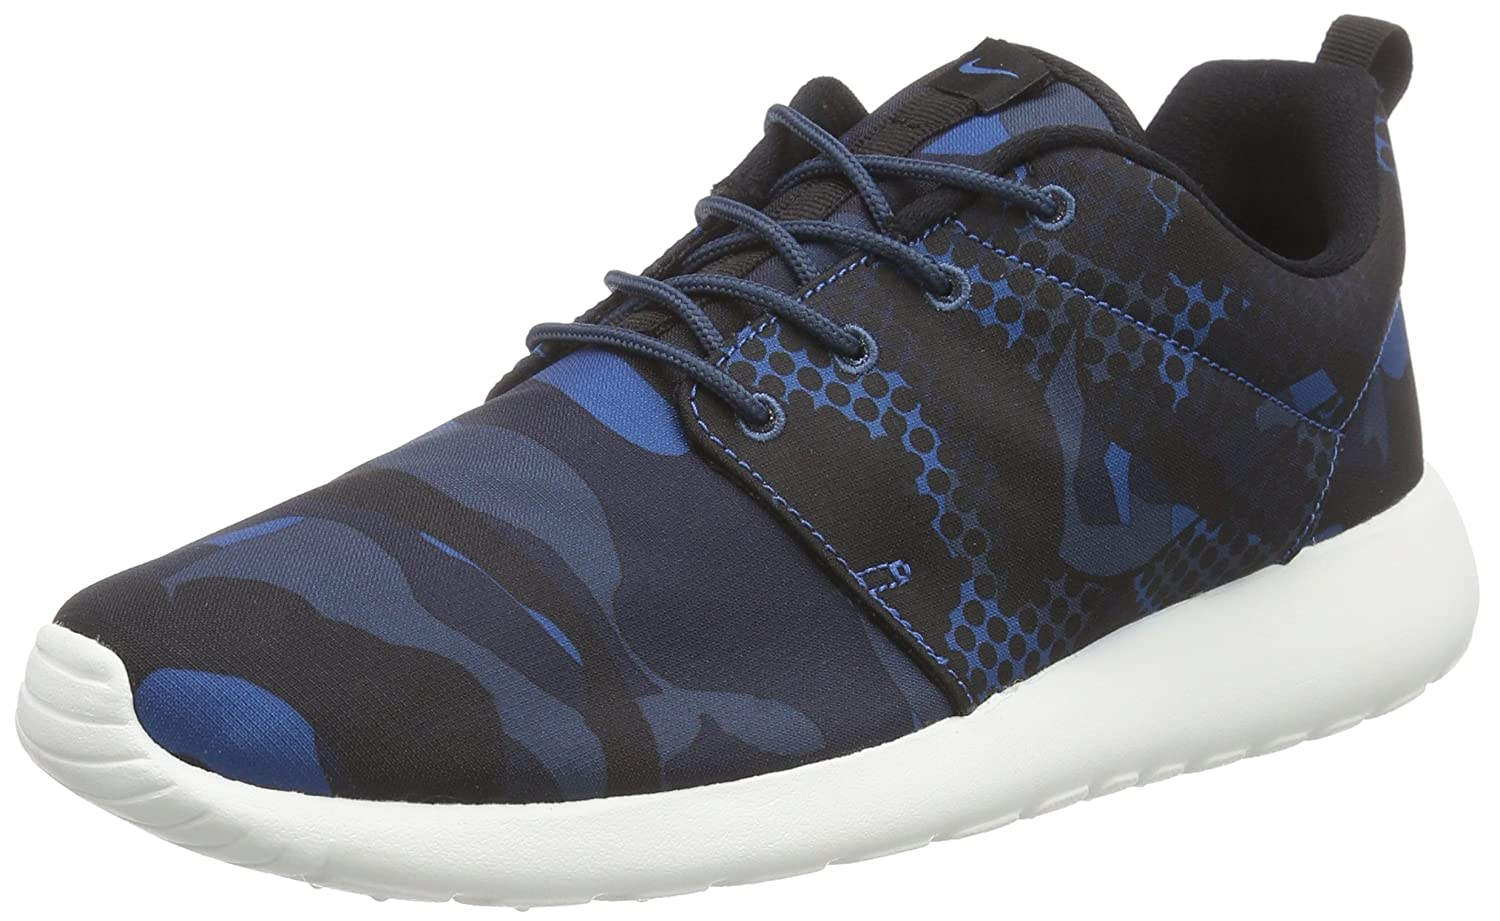 half off eacc6 3528d Nike Men s Roshe One Print Brigade Blue, Black, Squadron Blue and Obsidian  Running Shoes -7 UK India (41 EU)(8 US)  Buy Online at Low Prices in India  ...